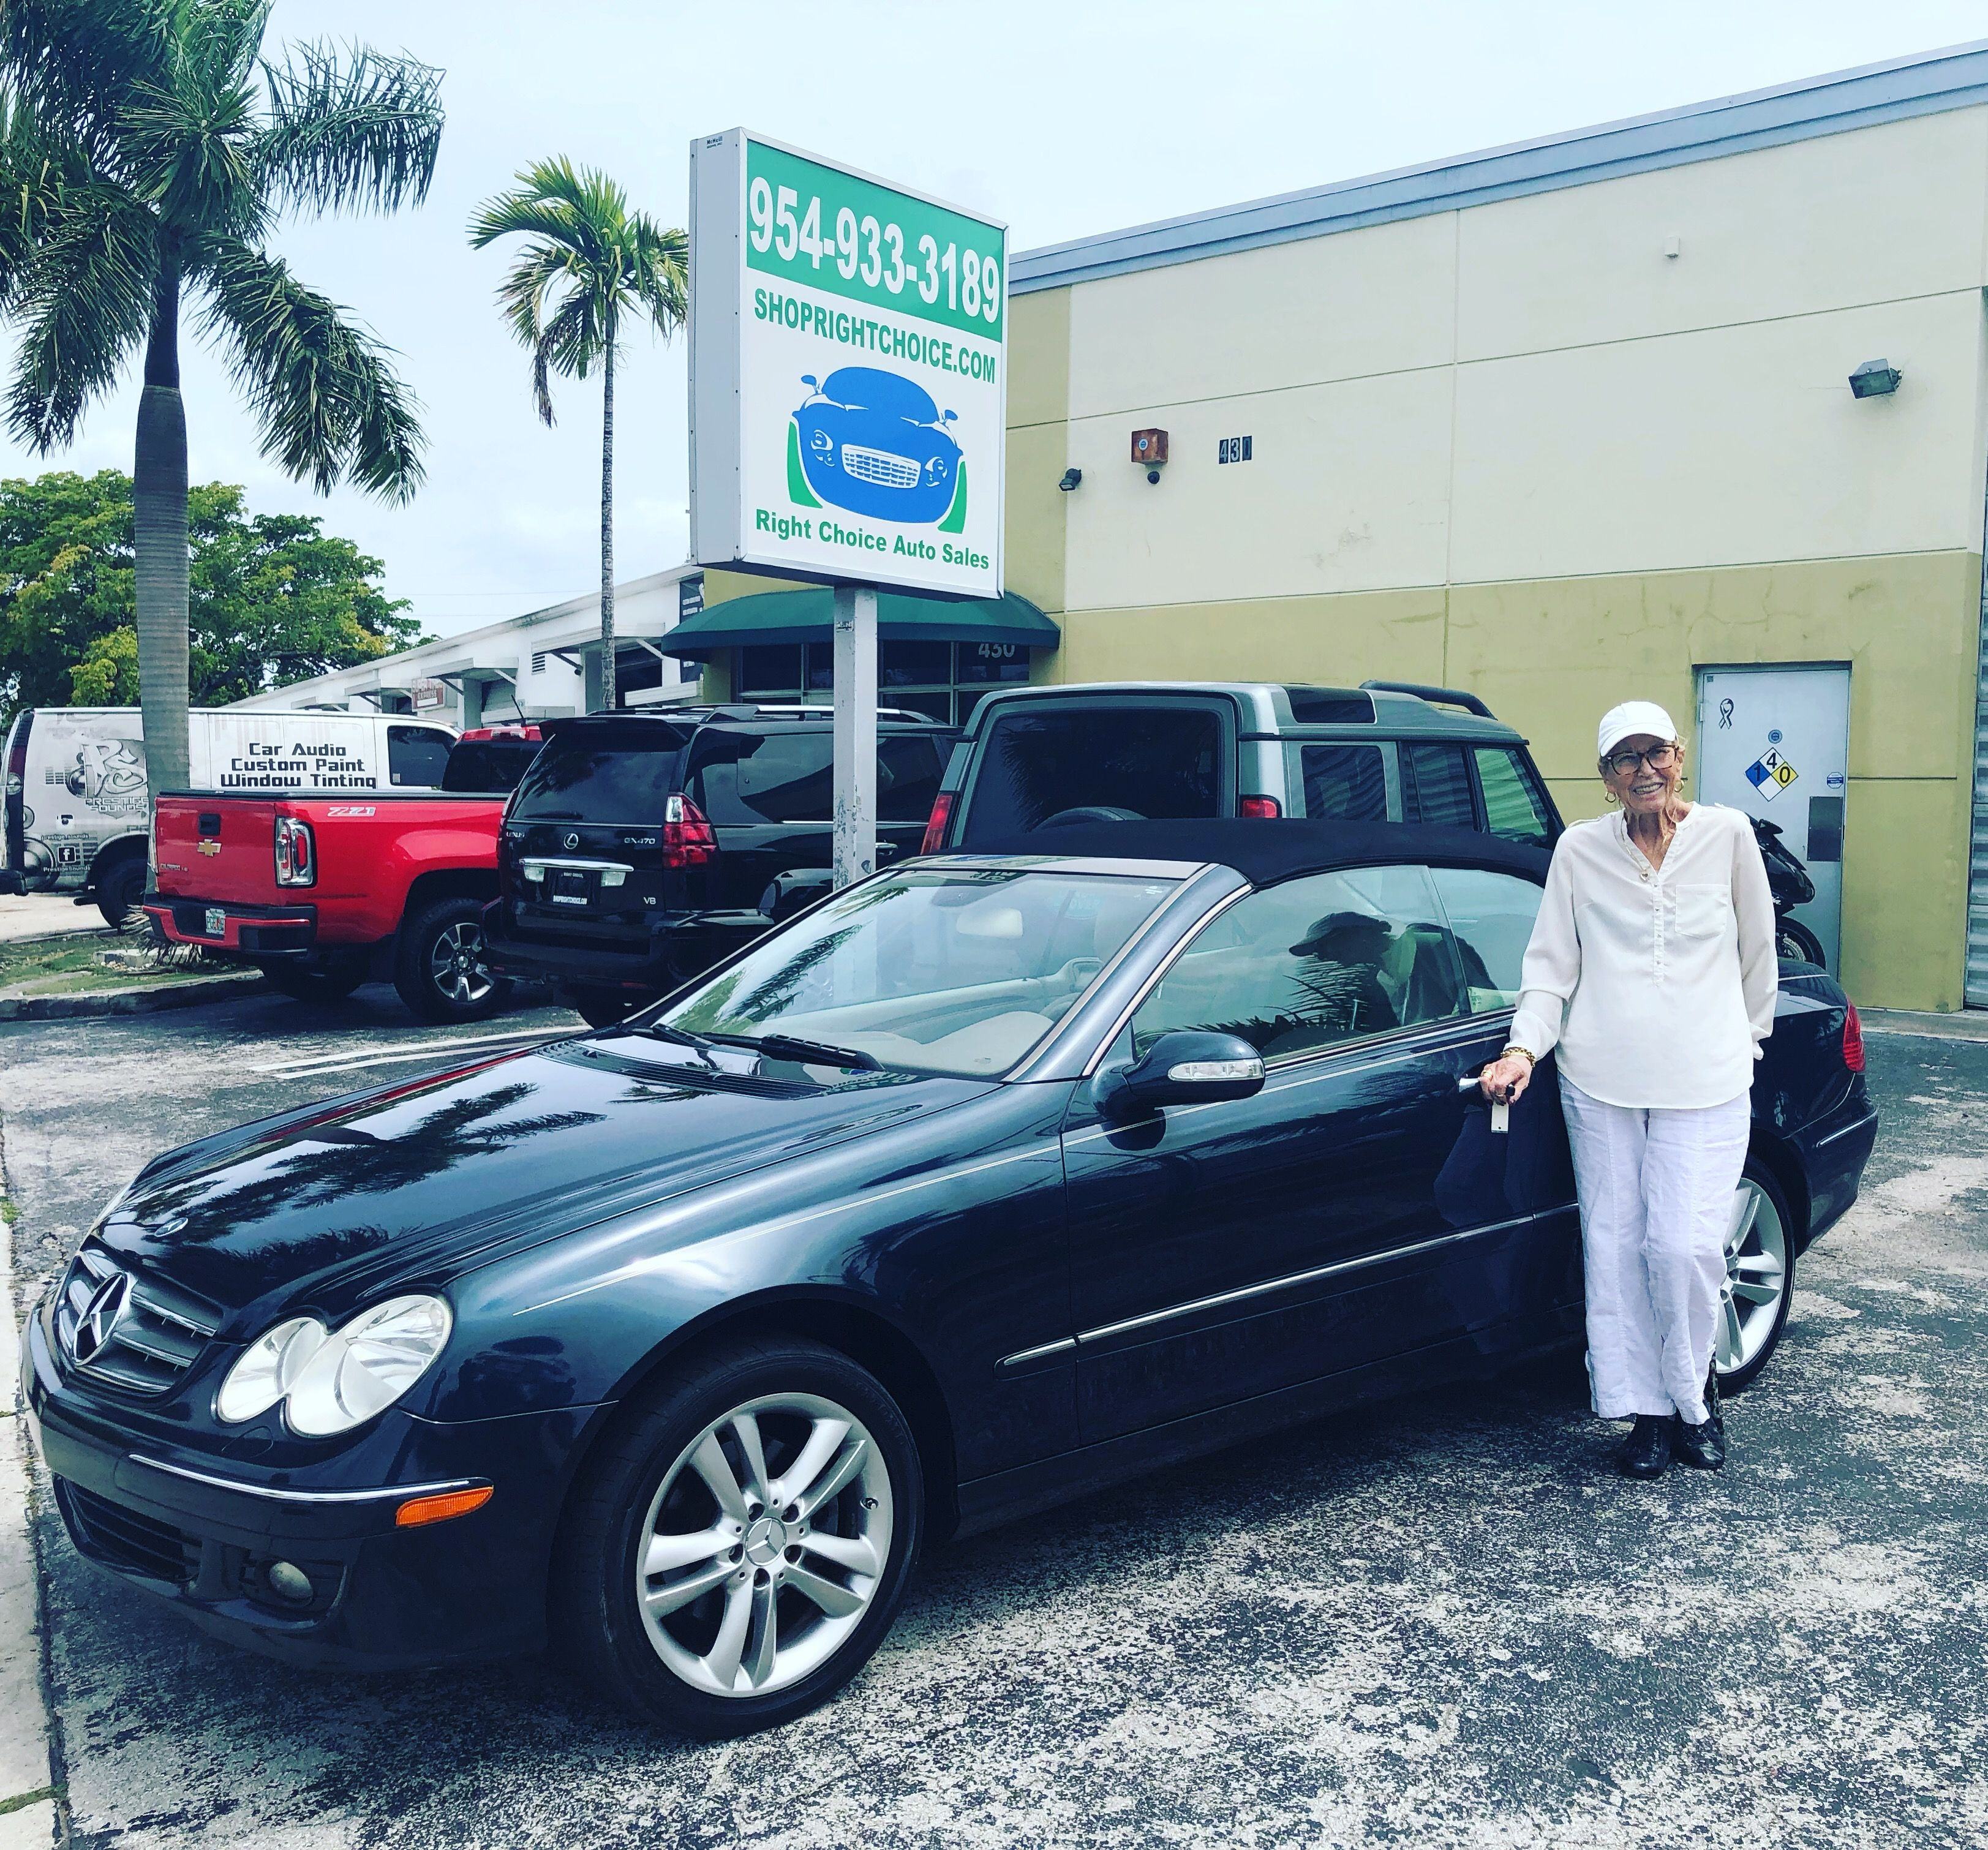 Another Happy Customer With Her 2006 Mercedes Benz Clk350 Convertible At Right Choice Auto Sales In Pompano Beach Cars For Sale Pompano Beach Used Luxury Cars